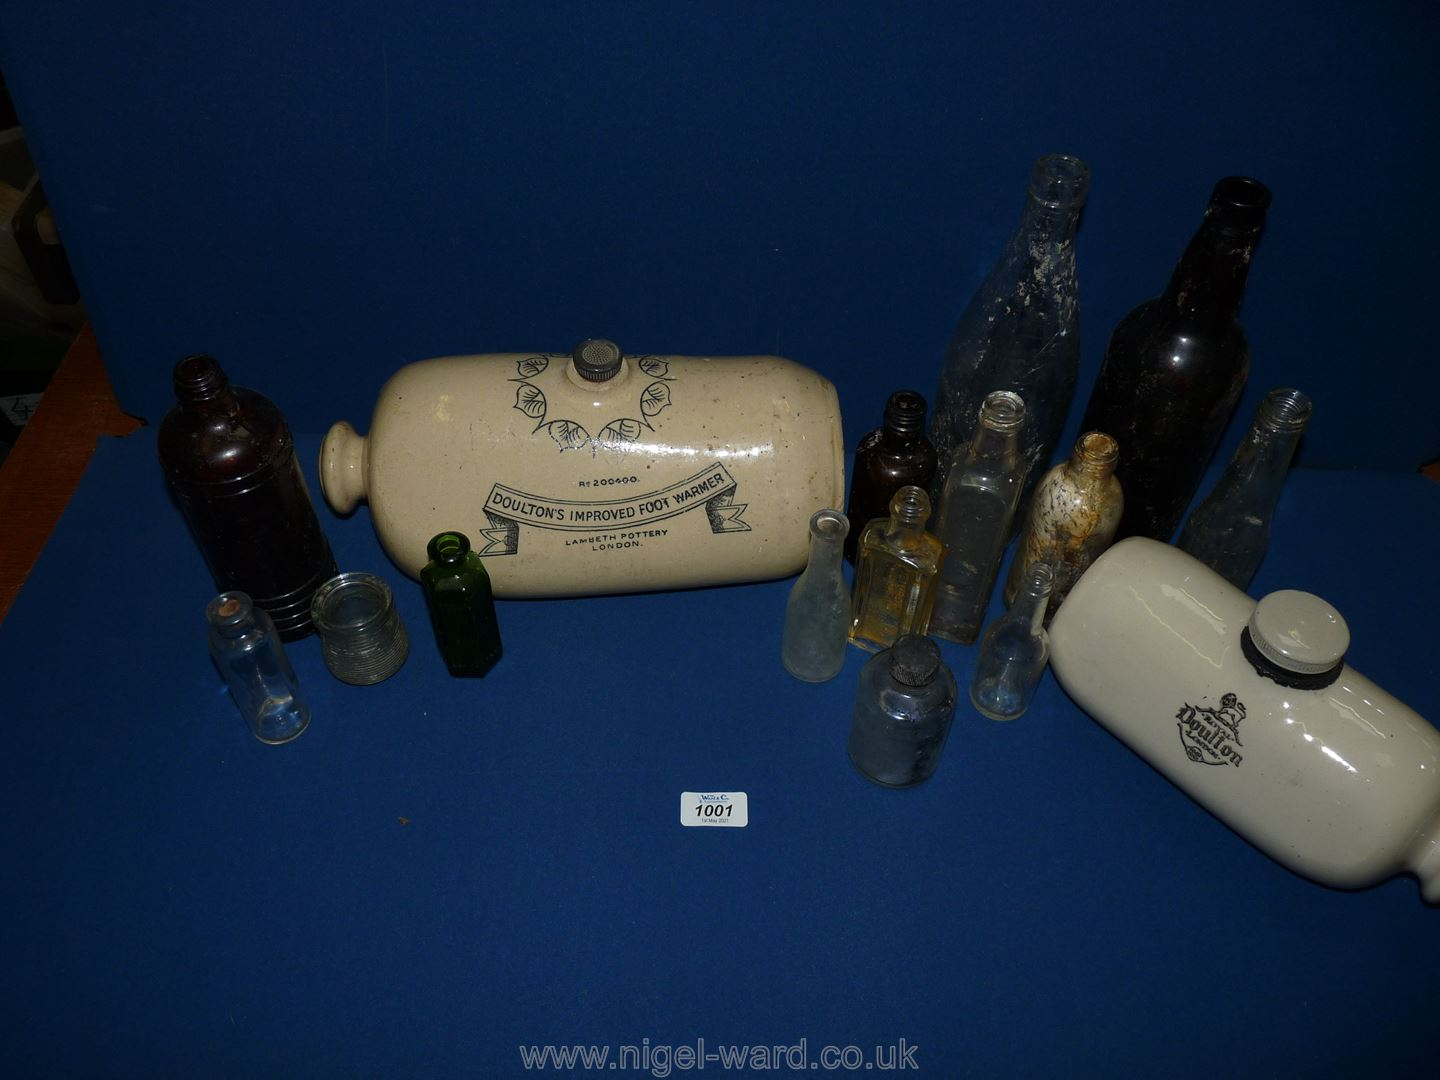 A quantity of bottles and two stoneware bed warmers 'Doulton's improved foot warmer'.